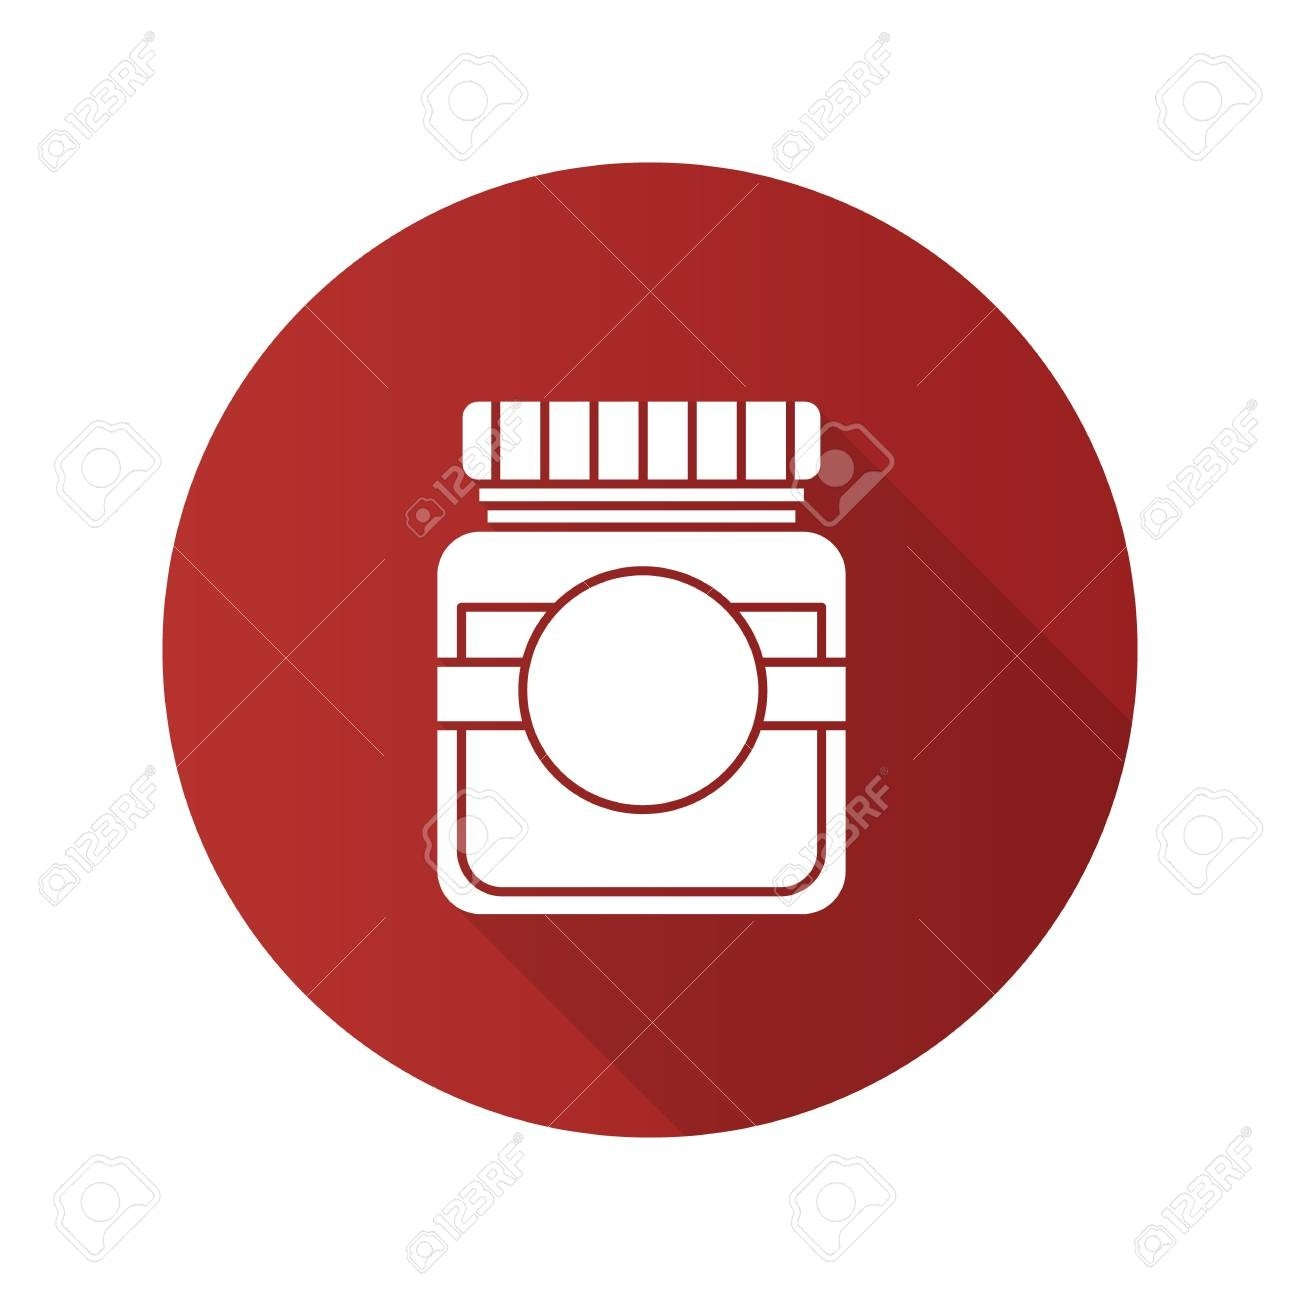 Glass Jar With Blank Label Flat Design Long Shadow Glyph Icon-Glyphicon Icon Is Blank